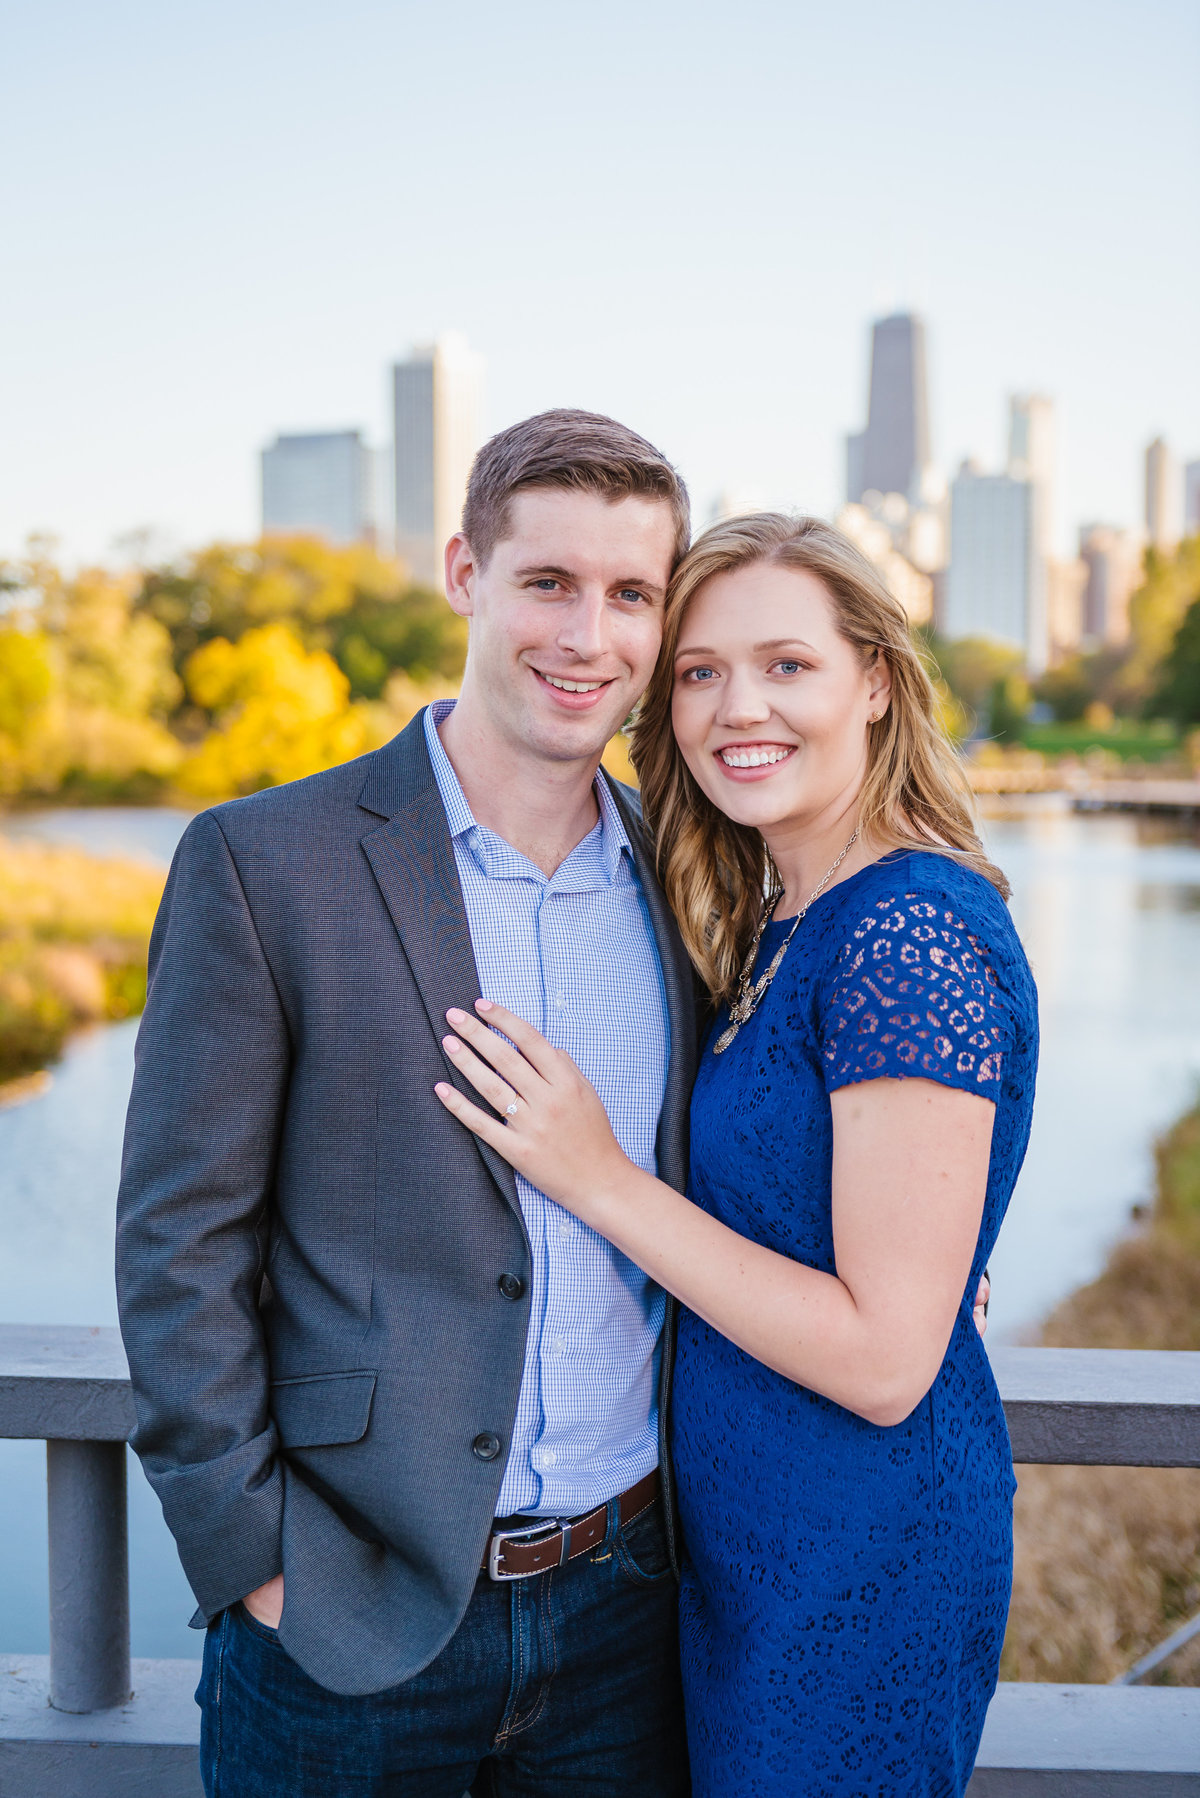 lincoln-park-engagement-chicago-the-paper-elephant-0008